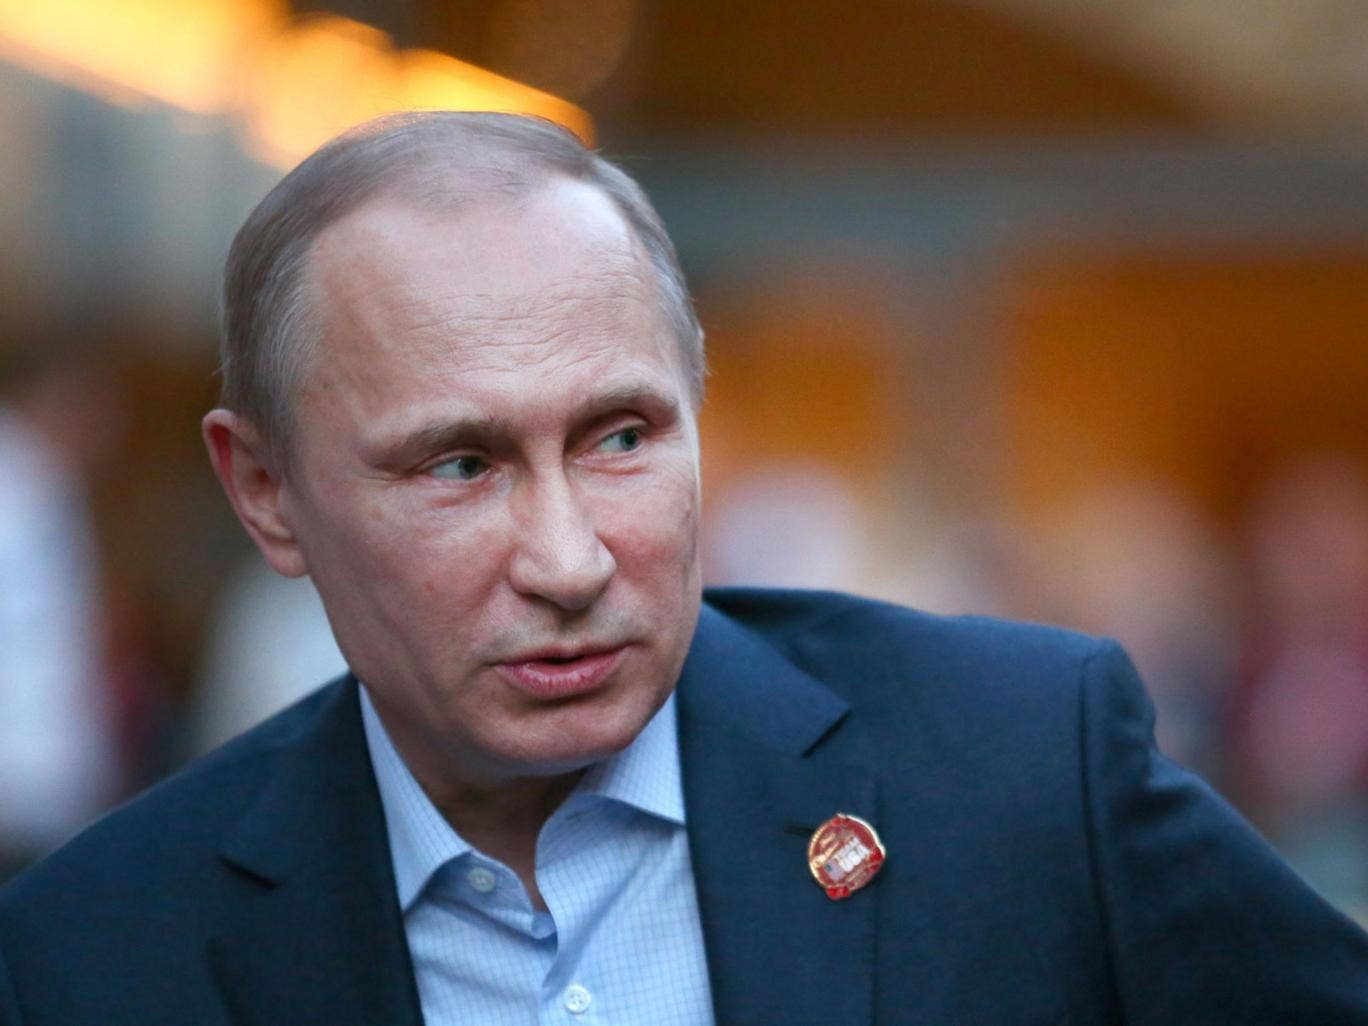 Putin now seems to be on the verge of plunging the region if not into World War Three